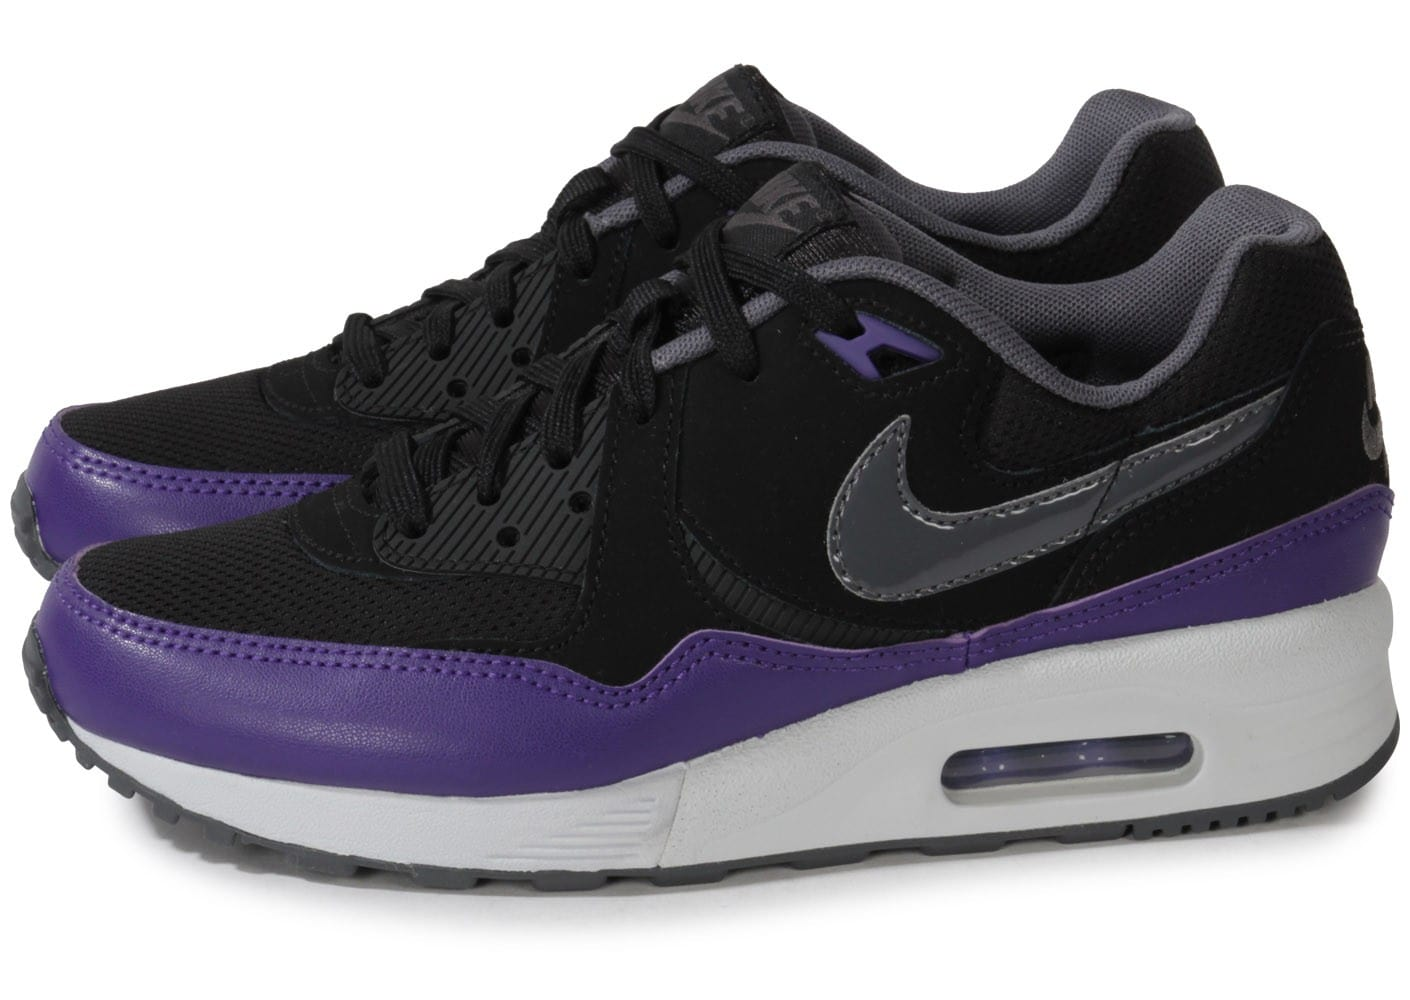 Nike Air Max Light Noir Violet Chaussures Chaussures